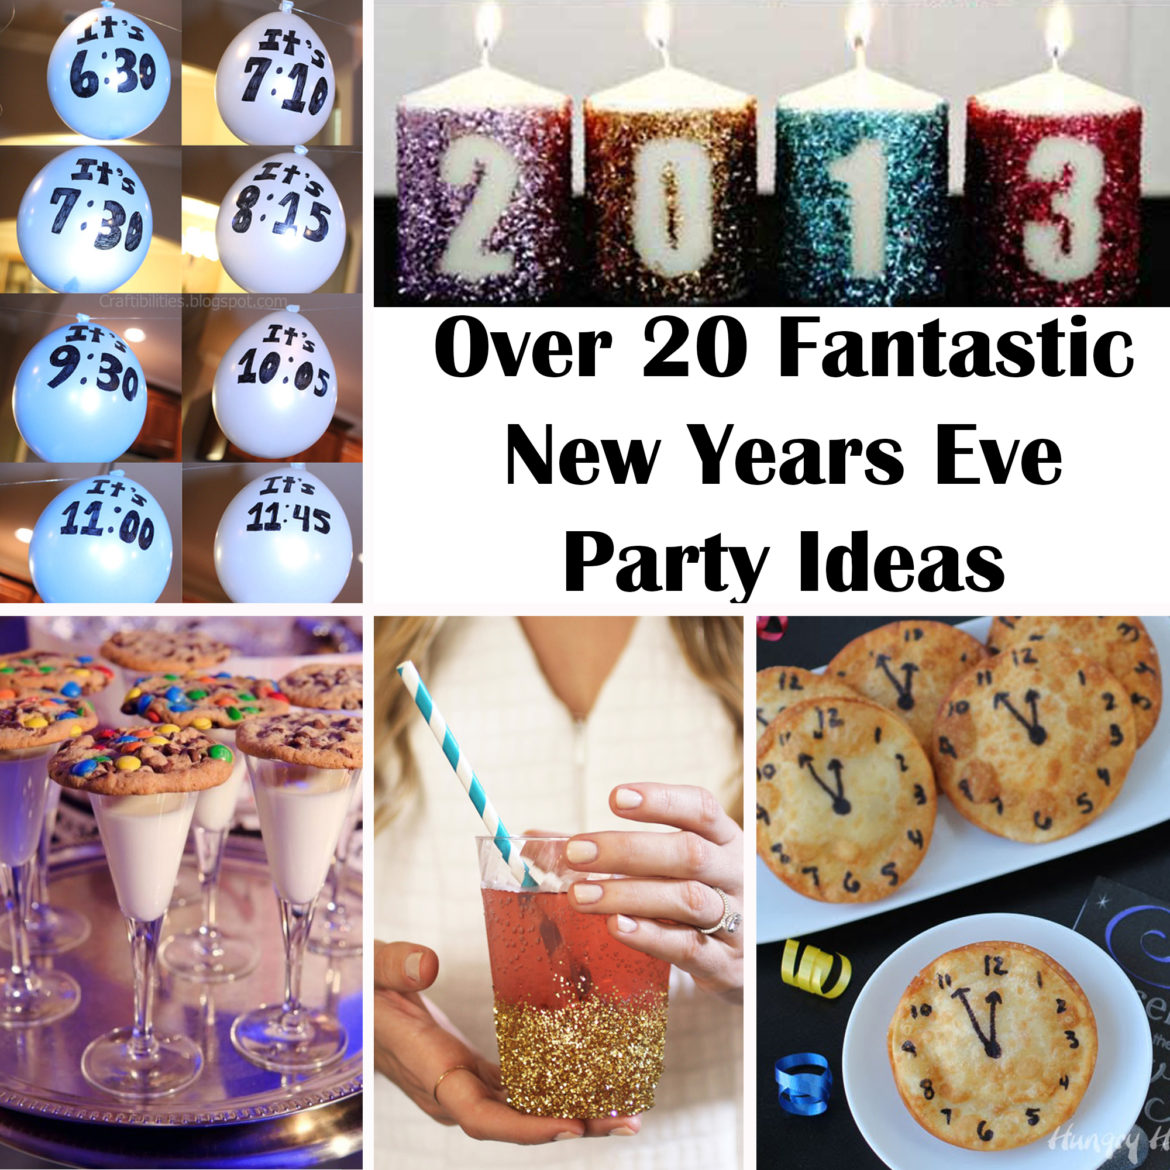 over-20-fantastic-new-years-eve-party-ideas